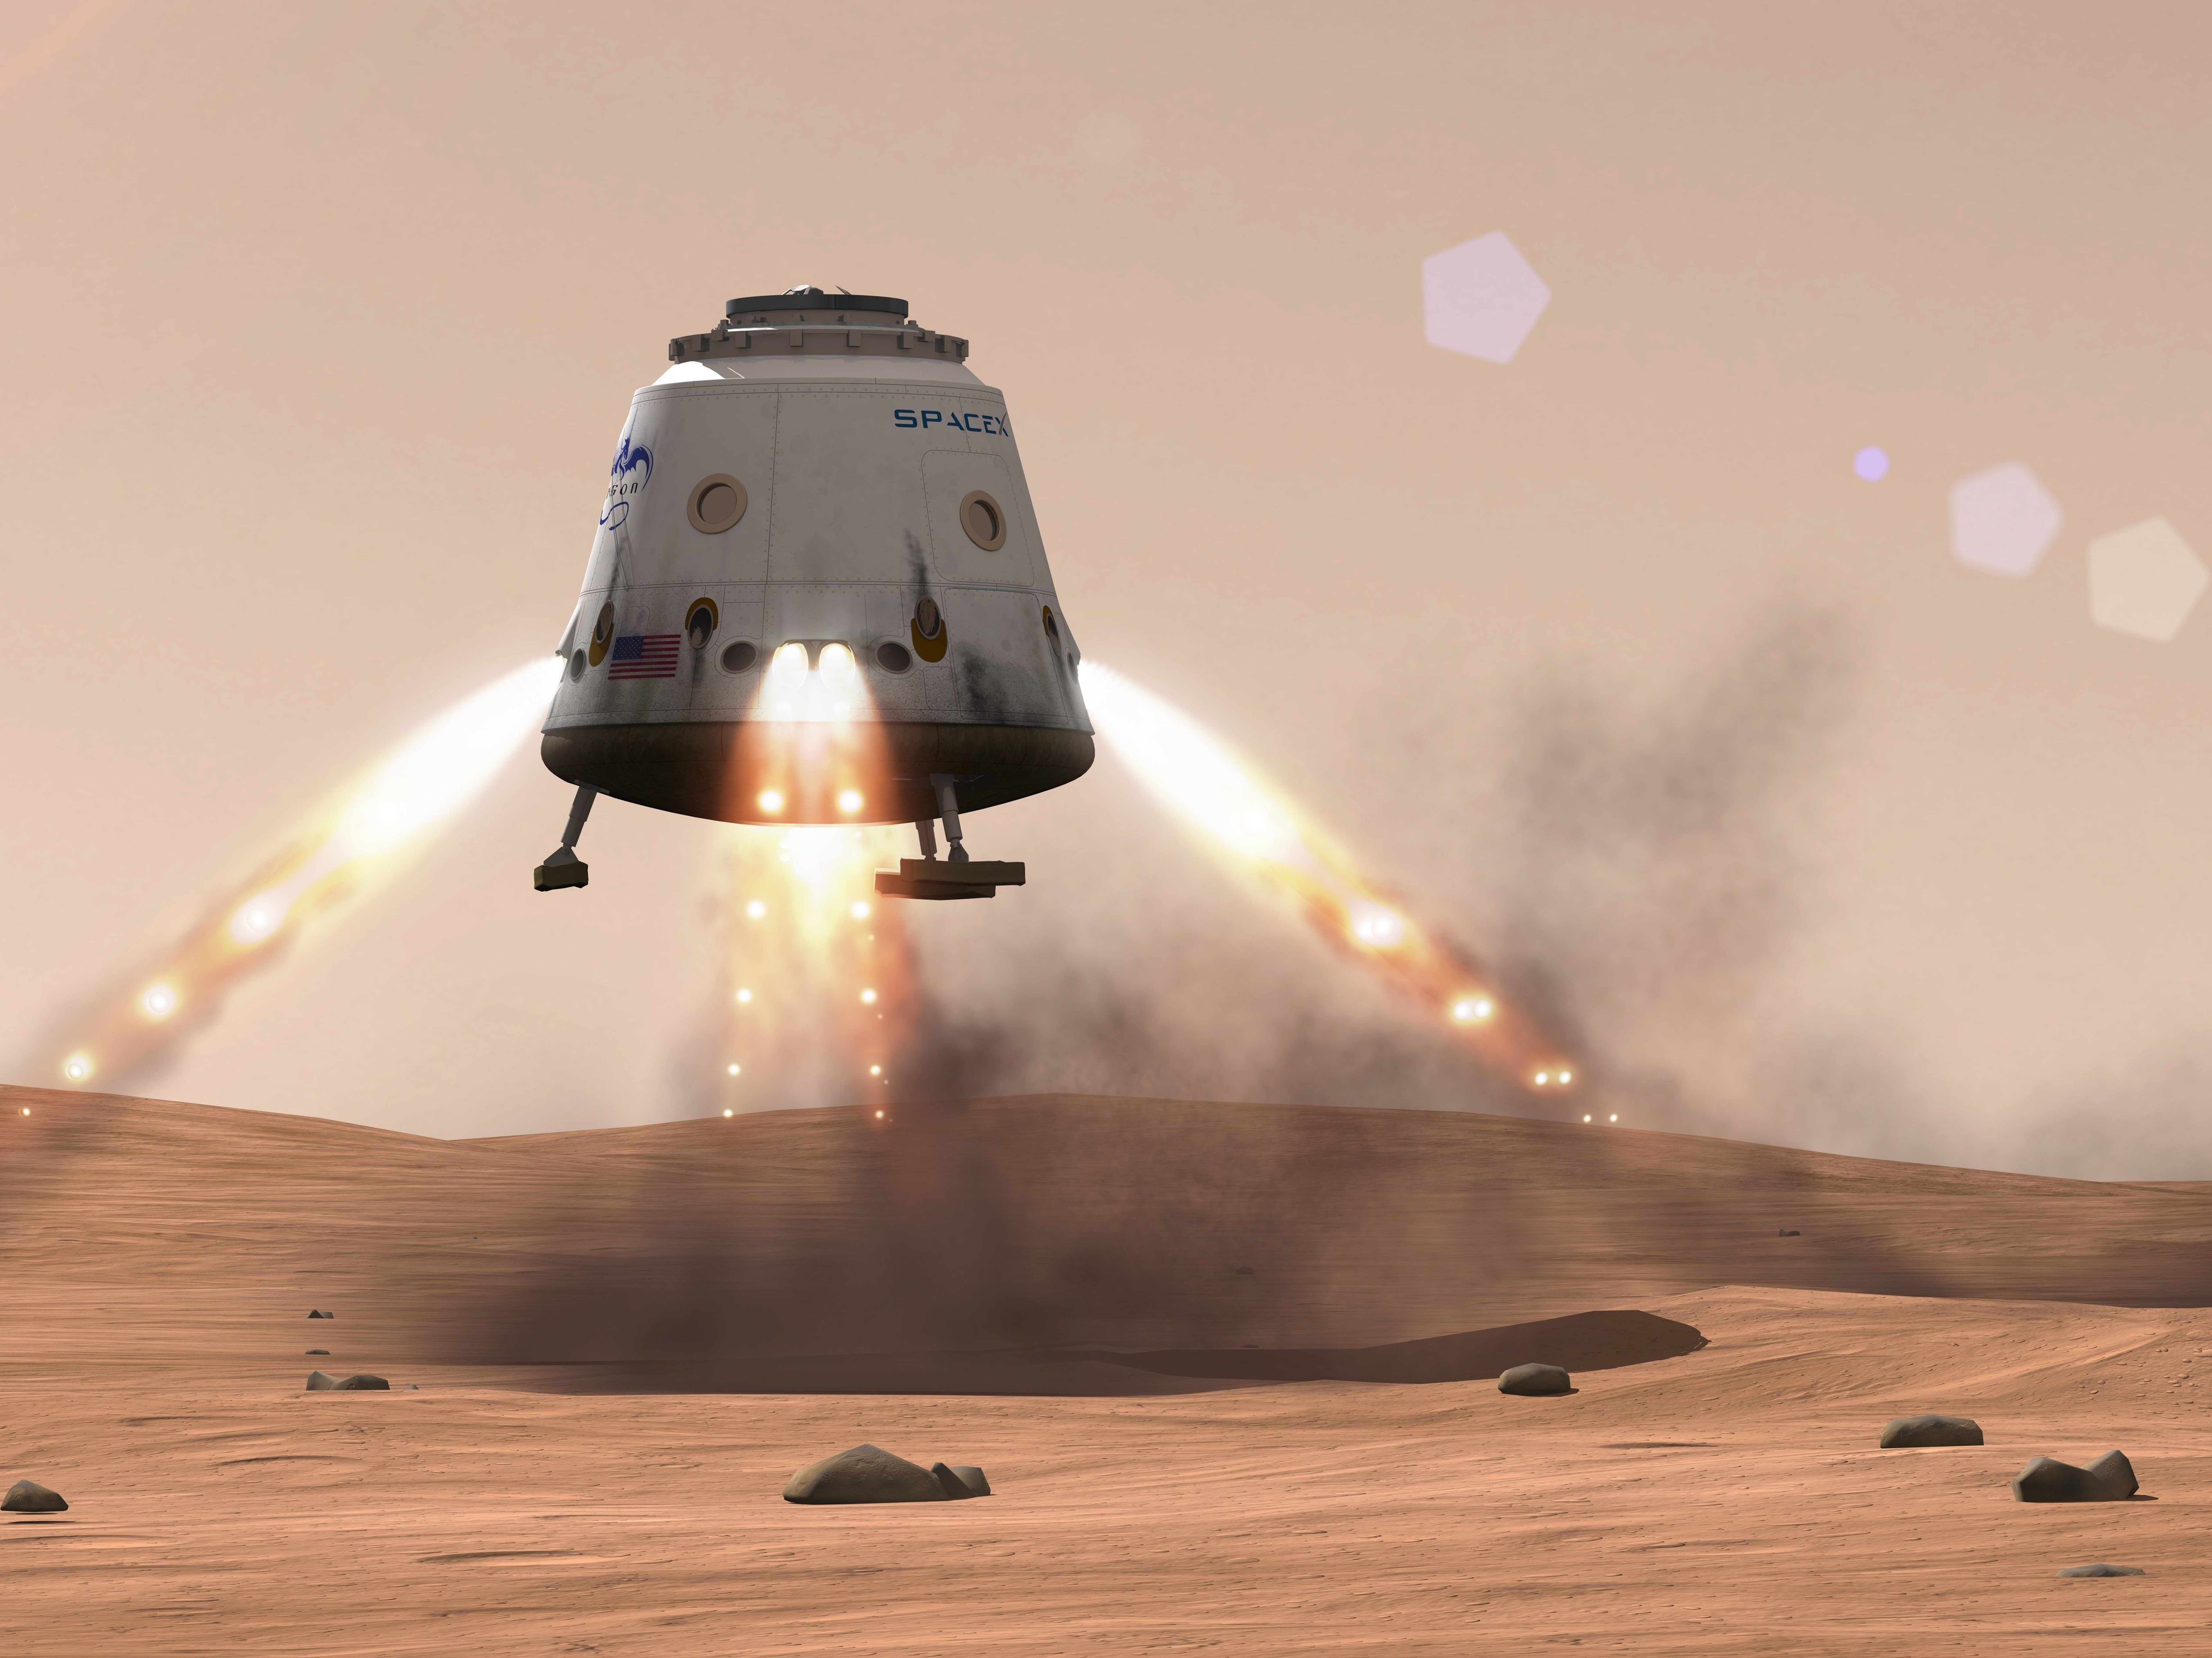 An artist's rendering of what the Red Dragon touching down on Mars might look like.